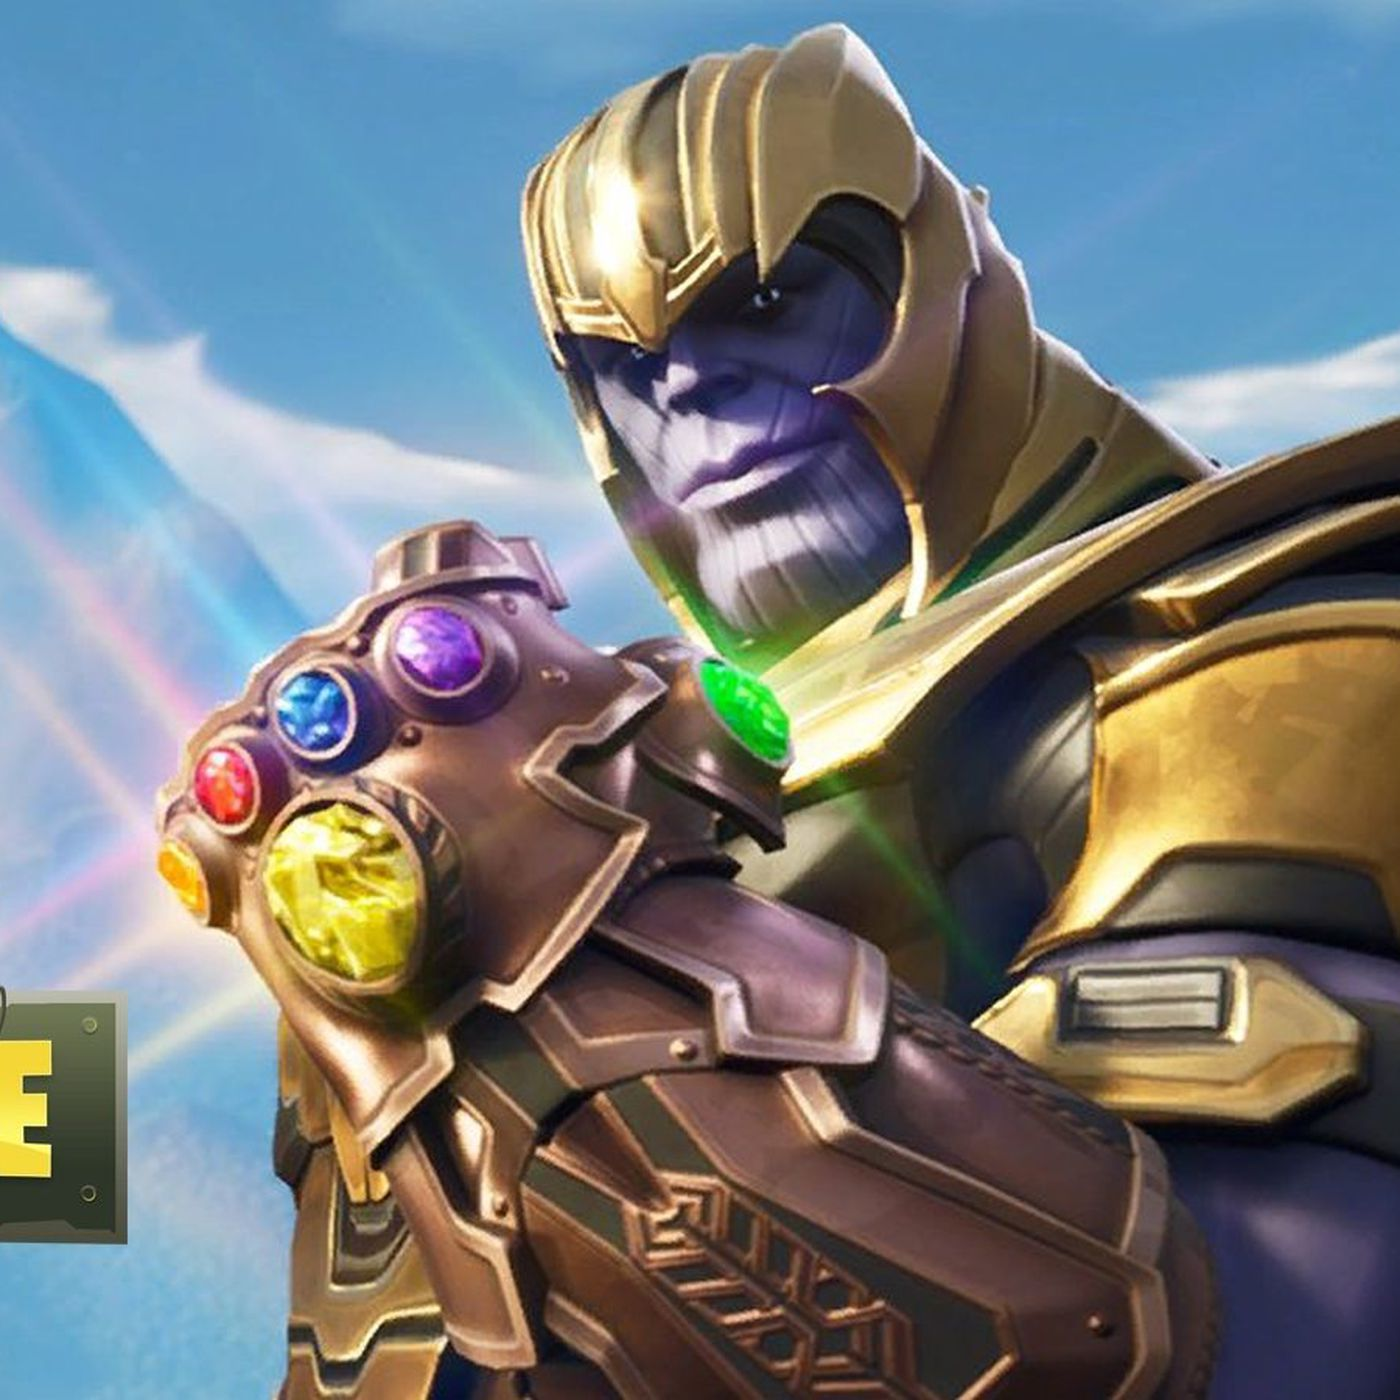 The universe-shattering implications of Fortnite in Avengers